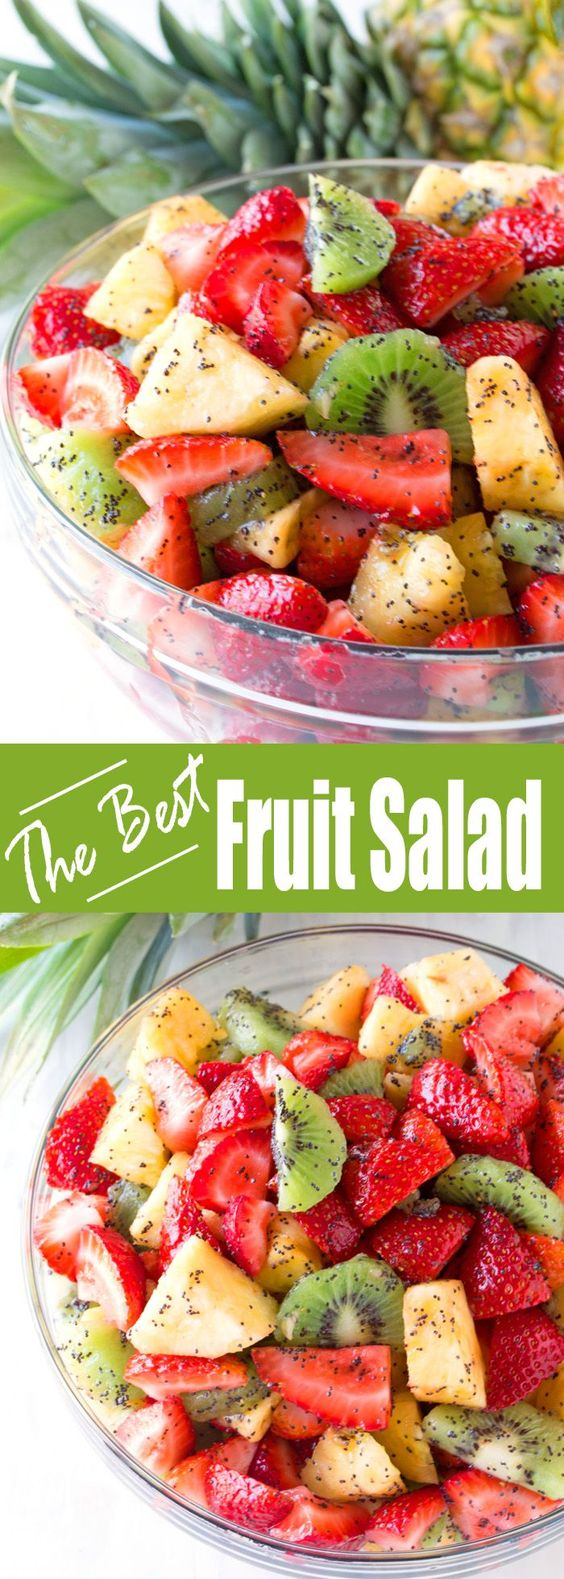 Triple Fruit Salad with Lemon-Poppy Seed Dressing